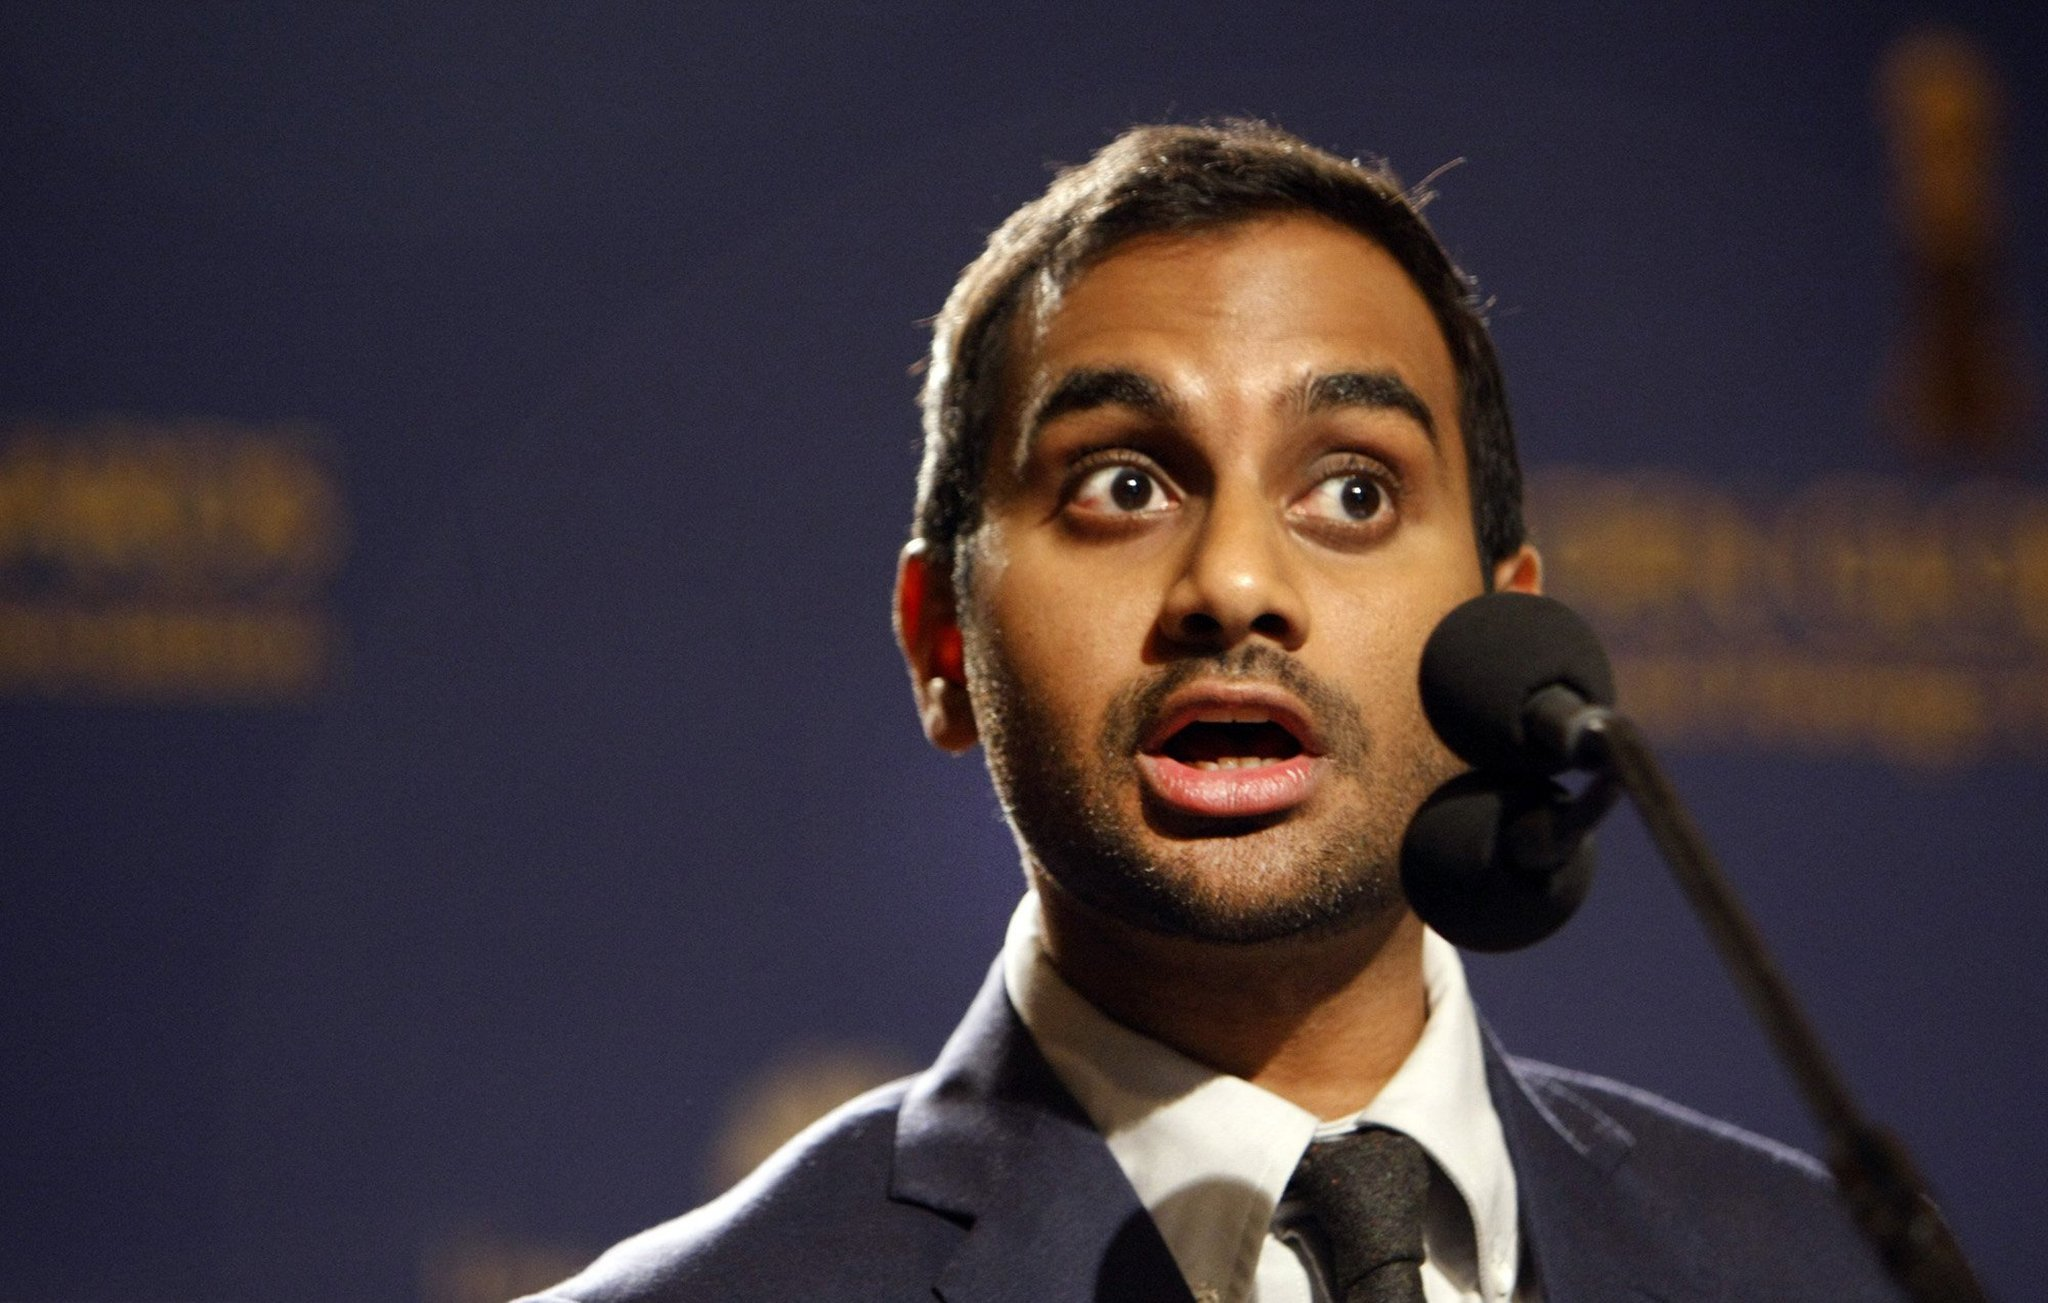 aziz ansari scrubsaziz ansari dangerously delicious, aziz ansari stand up, aziz ansari modern romance epub, aziz ansari parents, aziz ansari tv show, aziz ansari wife, aziz ansari scrubs, aziz ansari nationality, aziz ansari snl, aziz ansari buried alive, aziz ansari brother, aziz ansari wiki, aziz ansari wdw, aziz ansari mp3, aziz ansari special, aziz ansari w/ lighting, aziz ansari height, aziz ansari watch, aziz ansari goodreads, aziz ansari modern romance vk